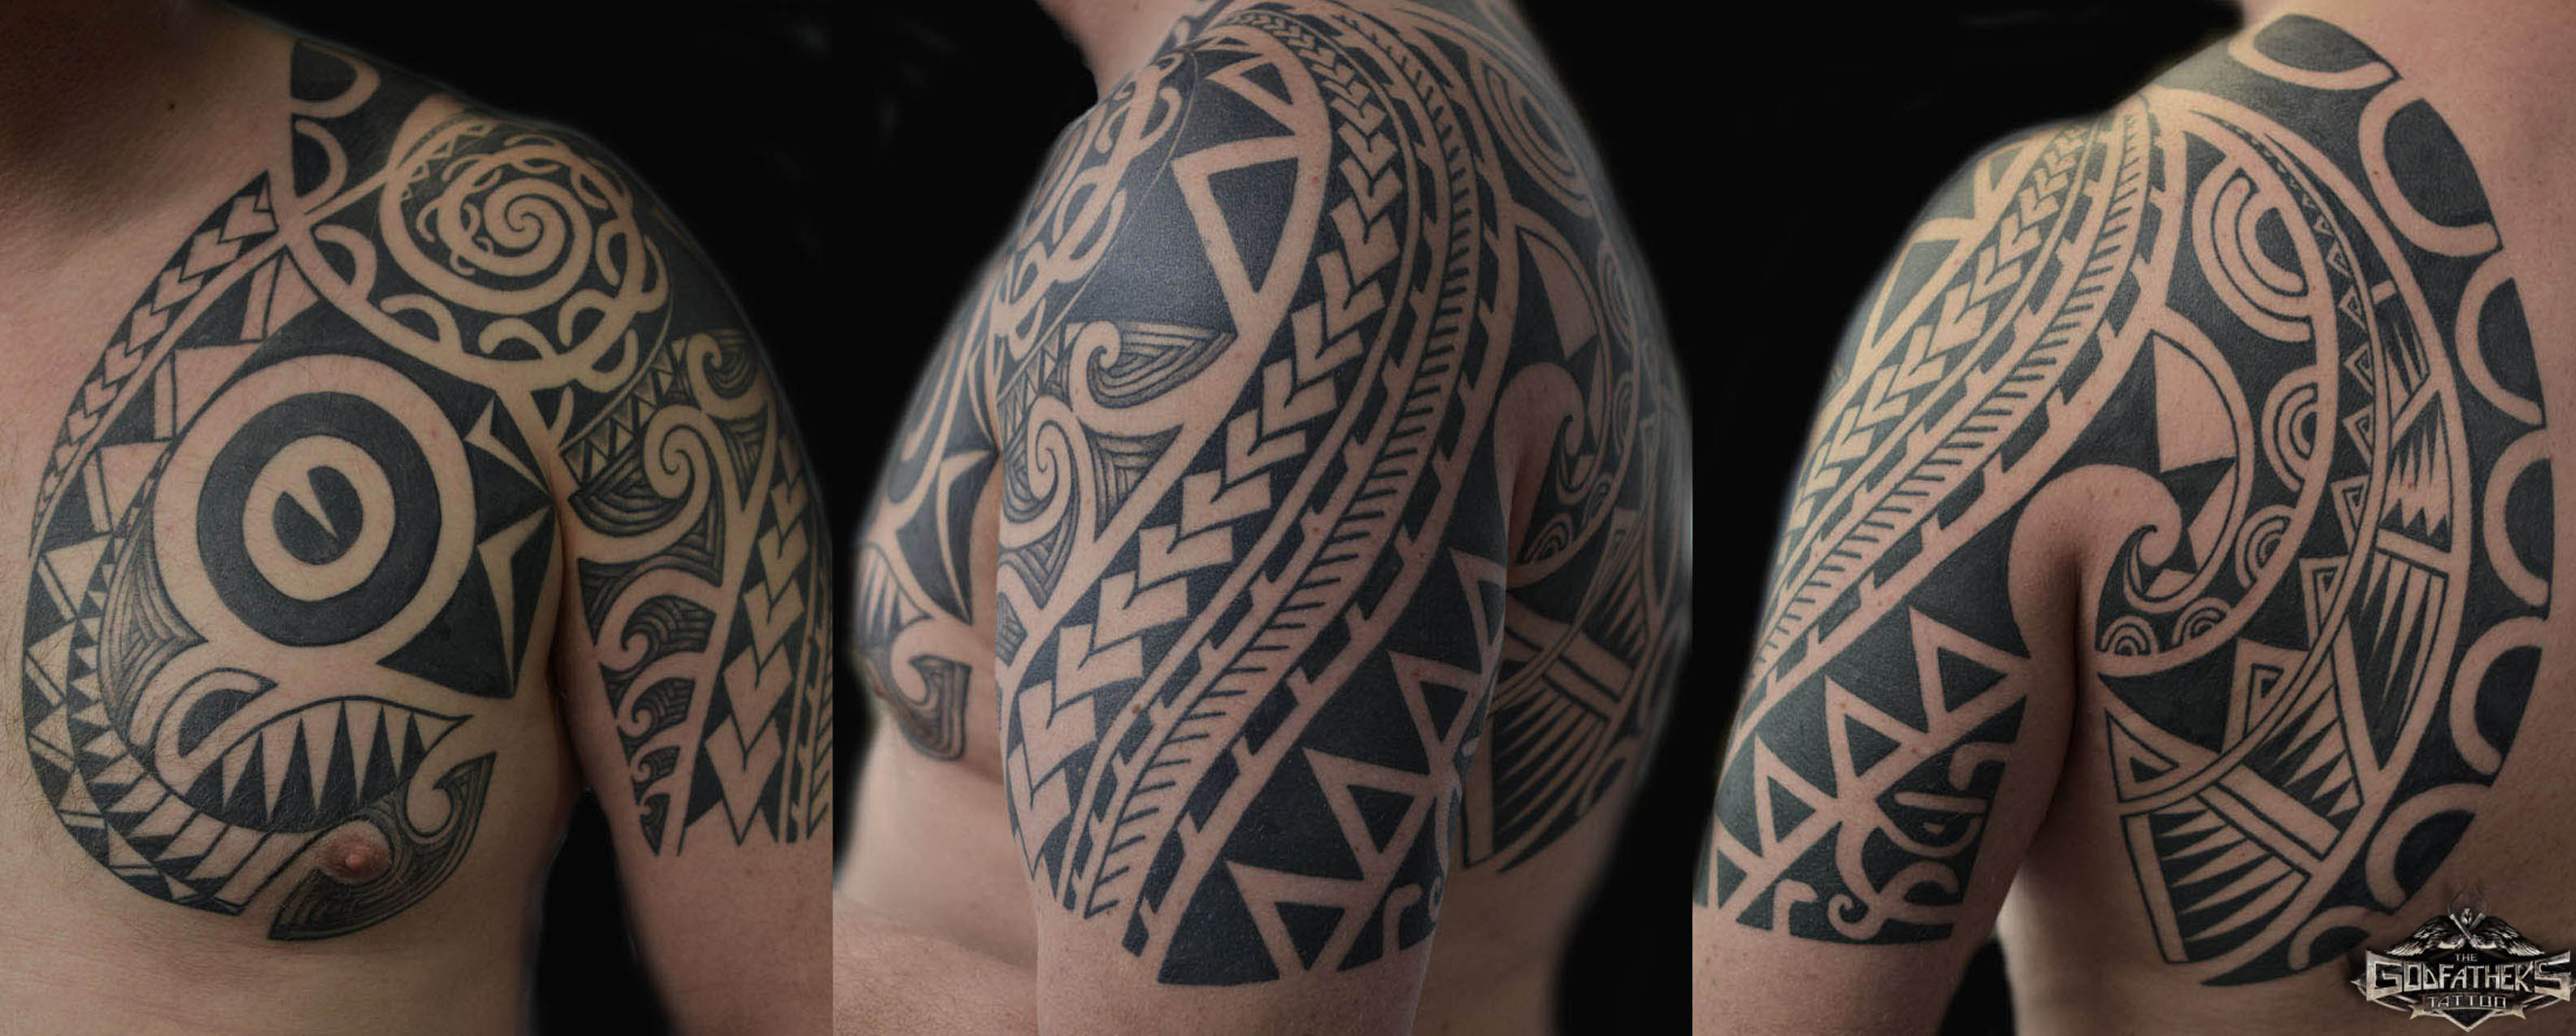 Maori Tattoo Cover Up: Gallery Of Our Tattoos In